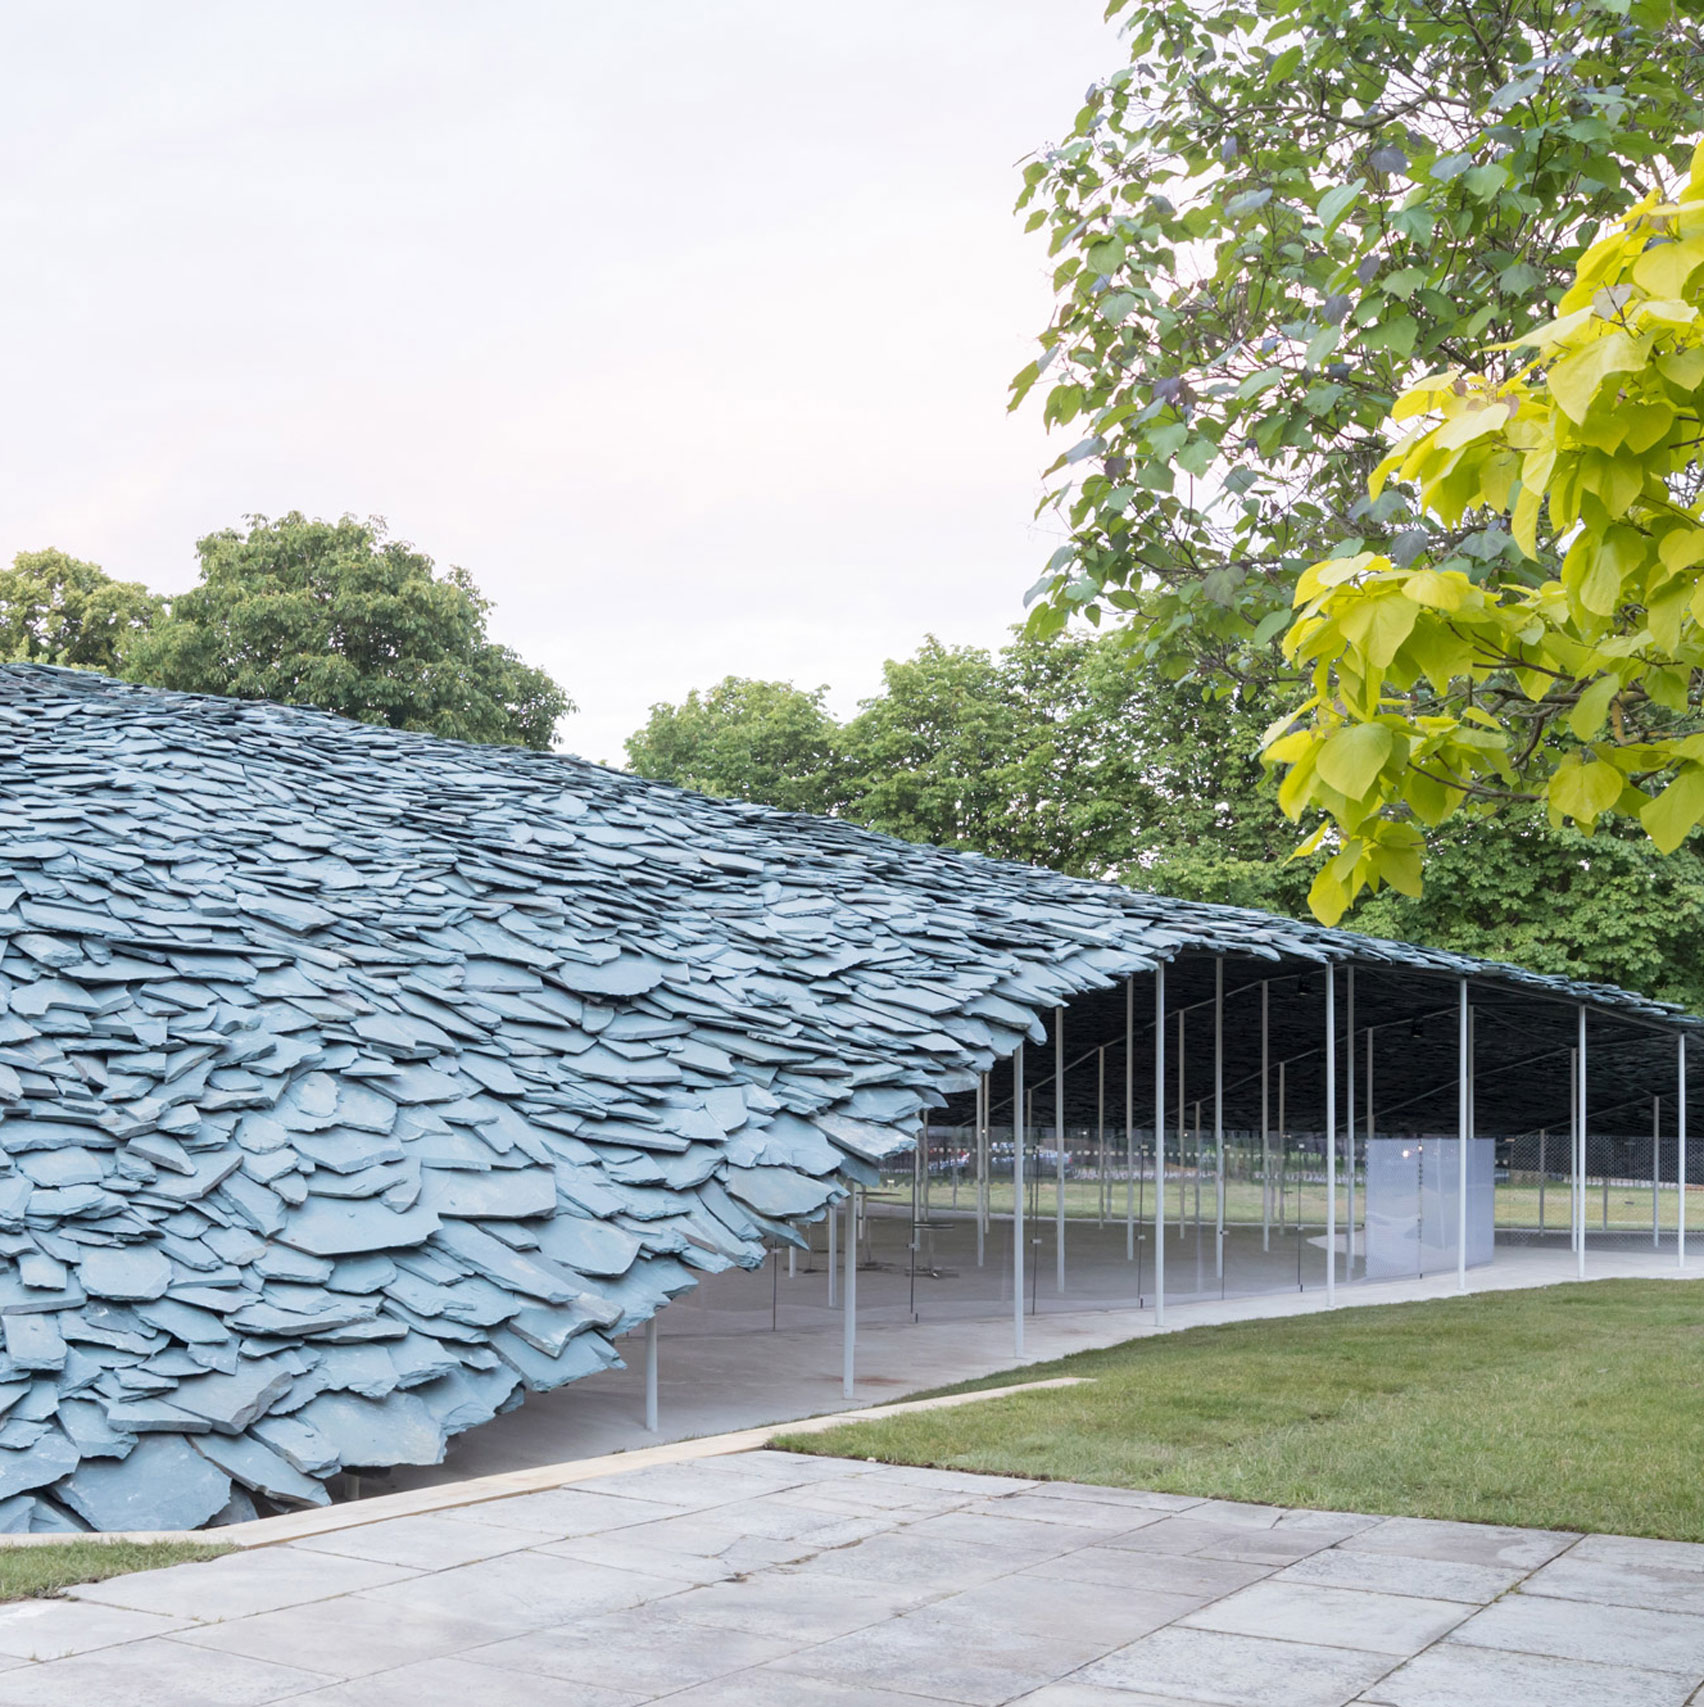 Serpentine Pavilion, UK, by Junya Ishigami